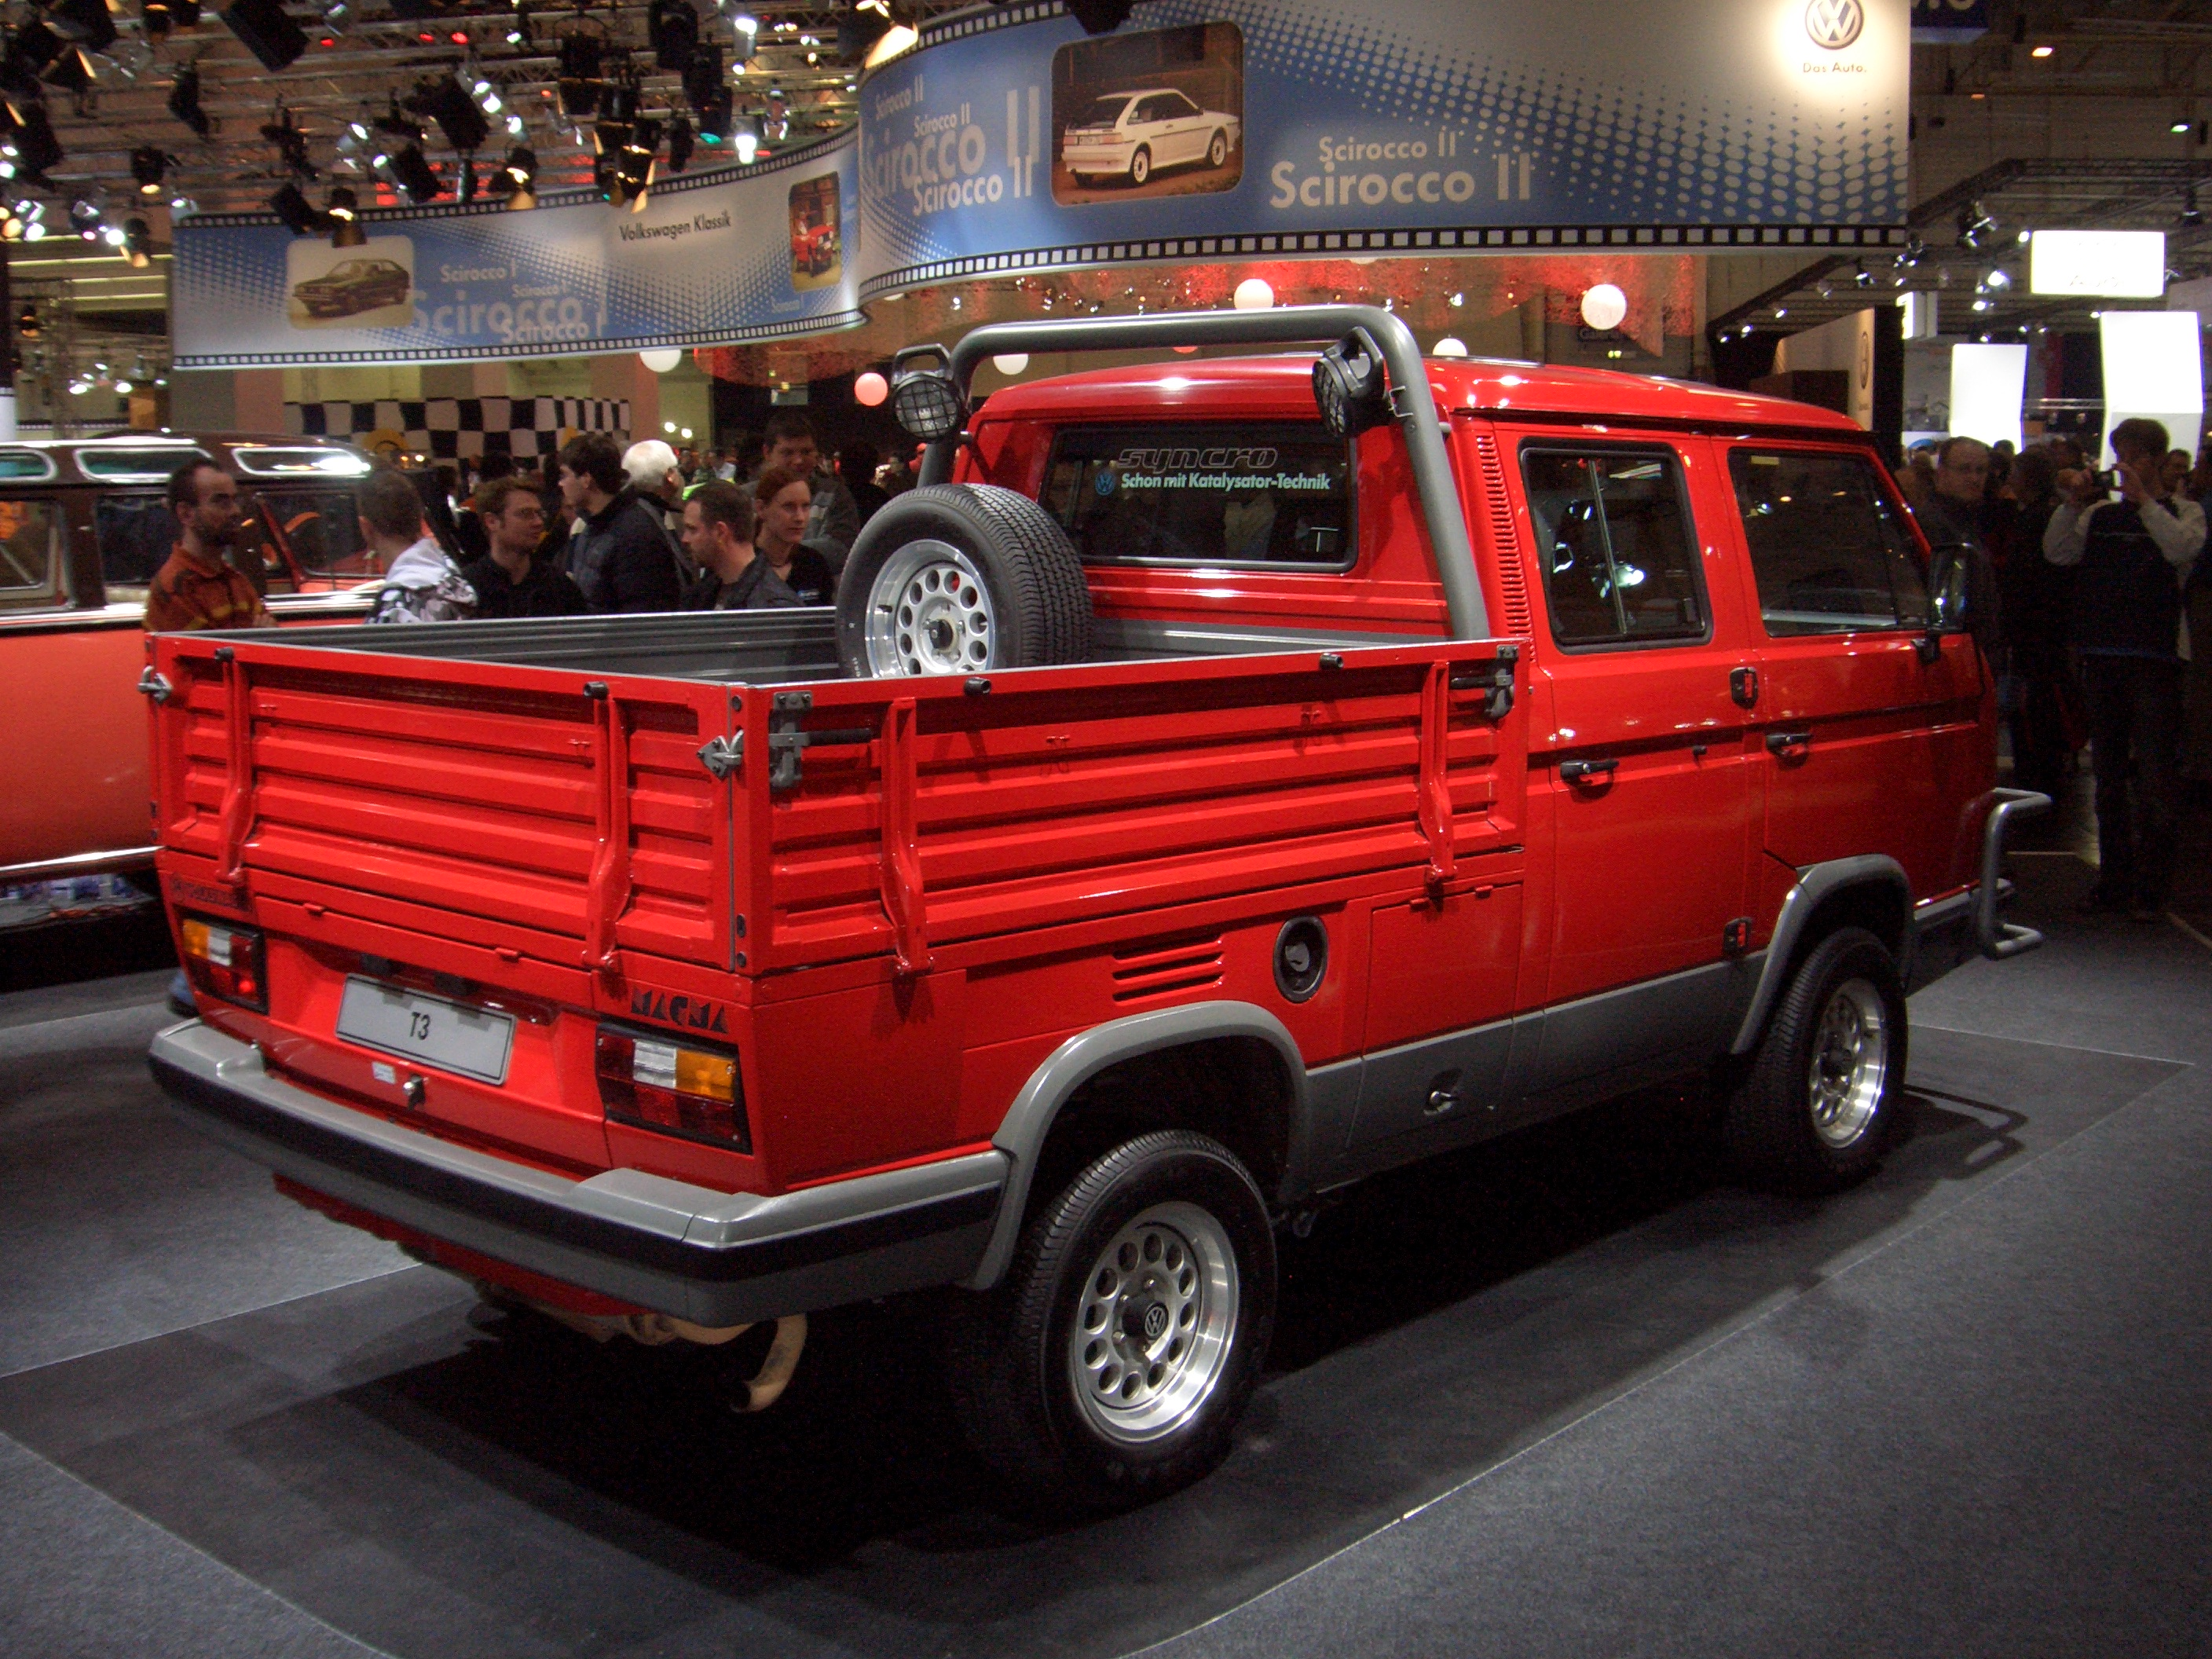 Vw T3 Double Cab >> Pin Vw T3 Doka On Snow on Pinterest